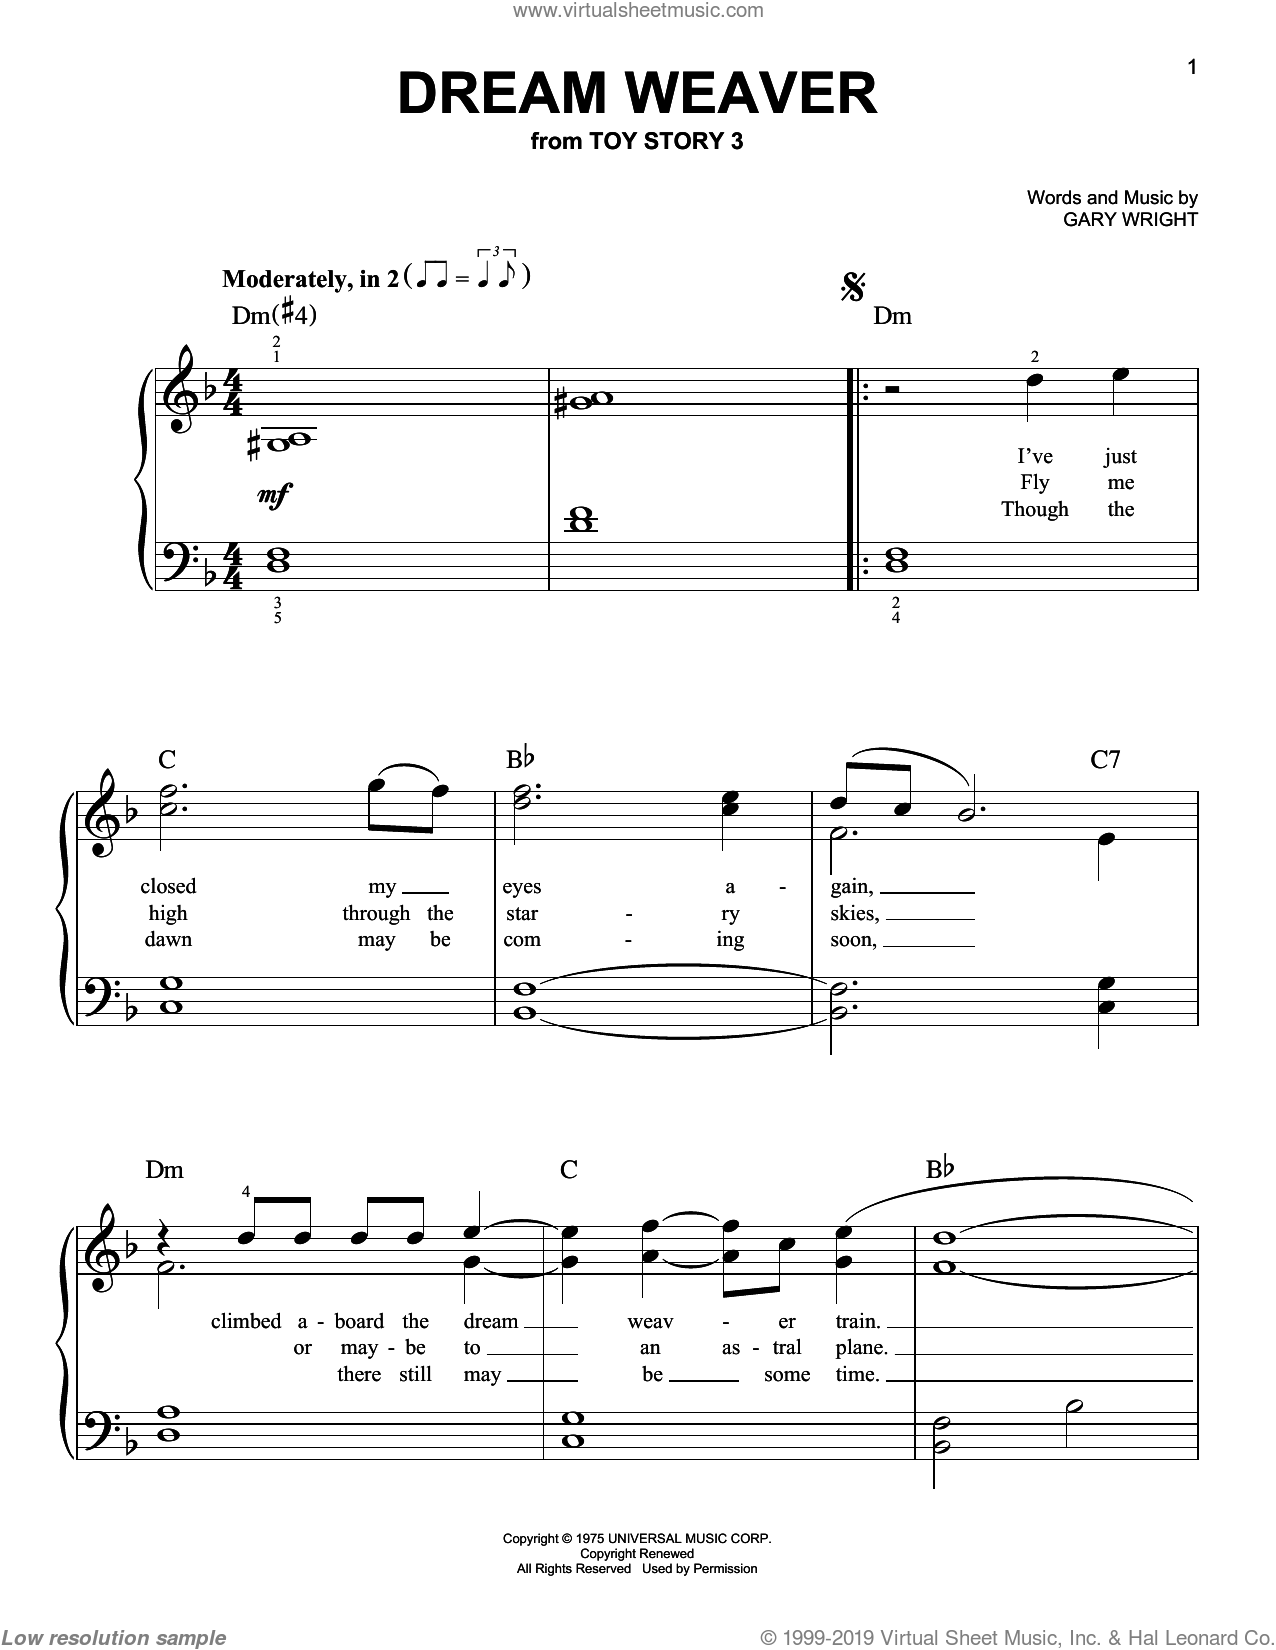 Dream Weaver sheet music for piano solo by Gary Wright